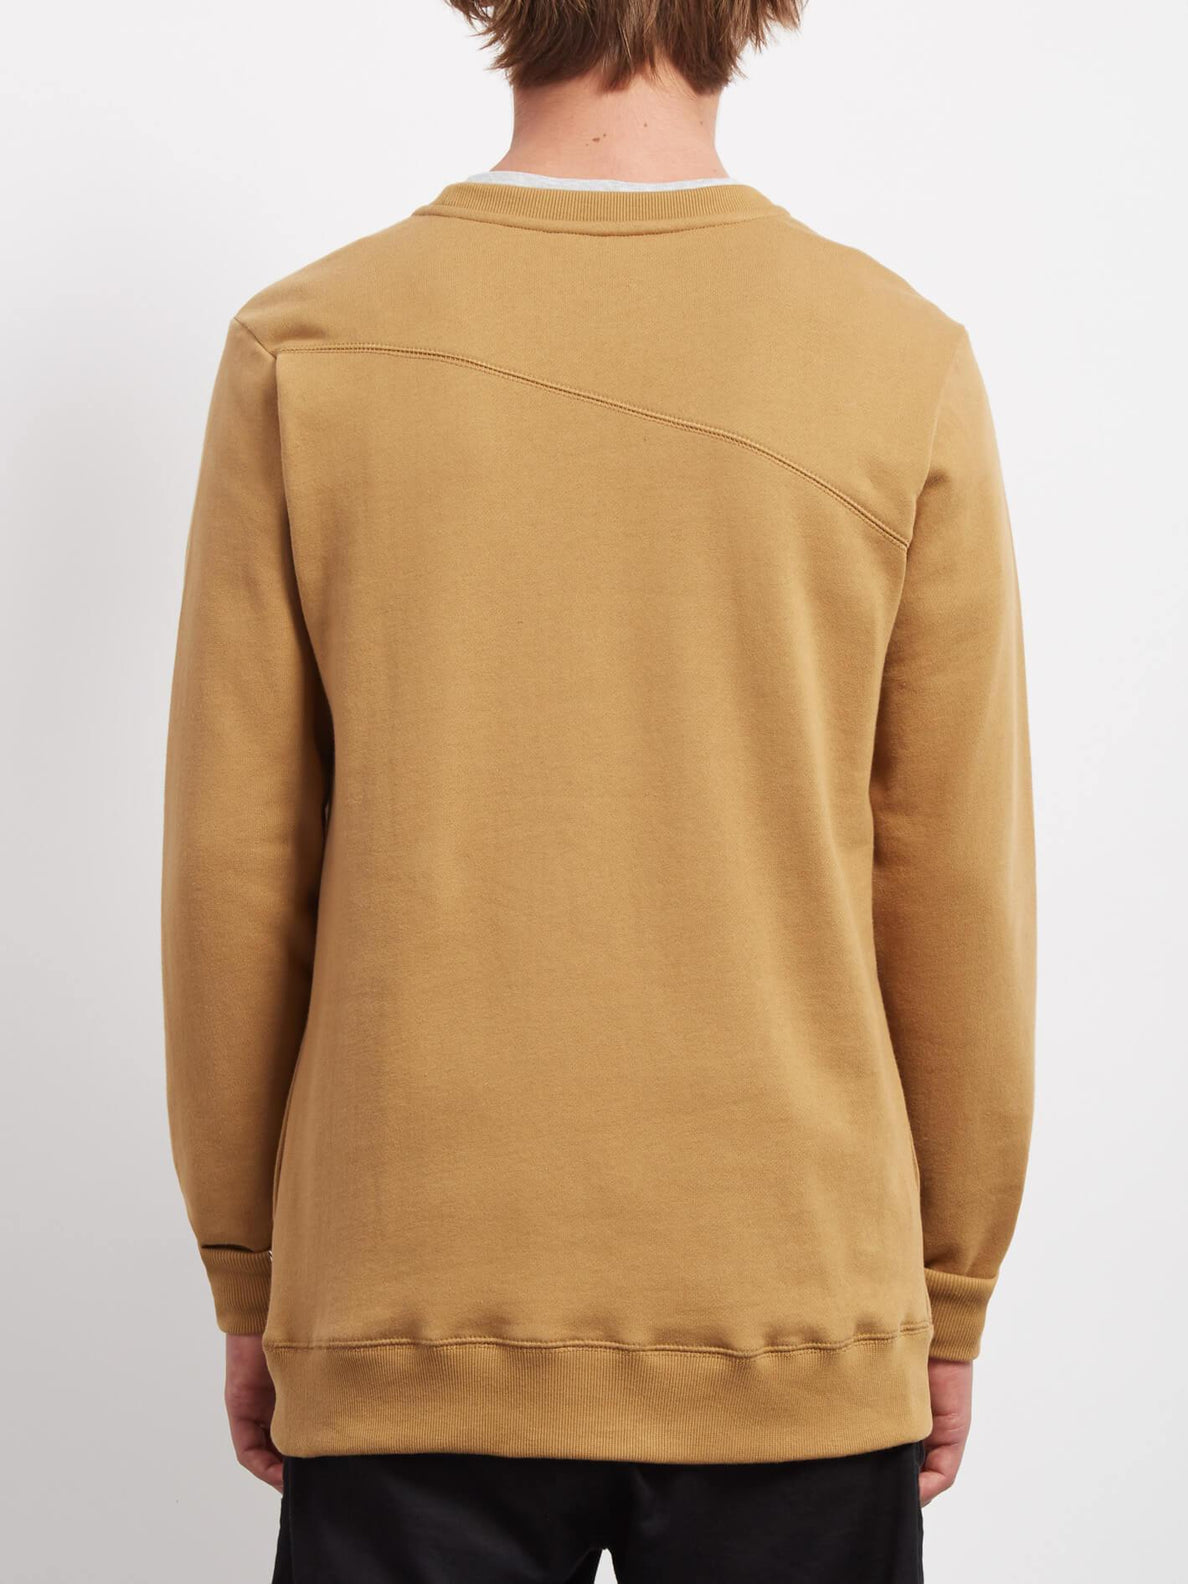 Sudadera Sngl Stone  - Old Gold